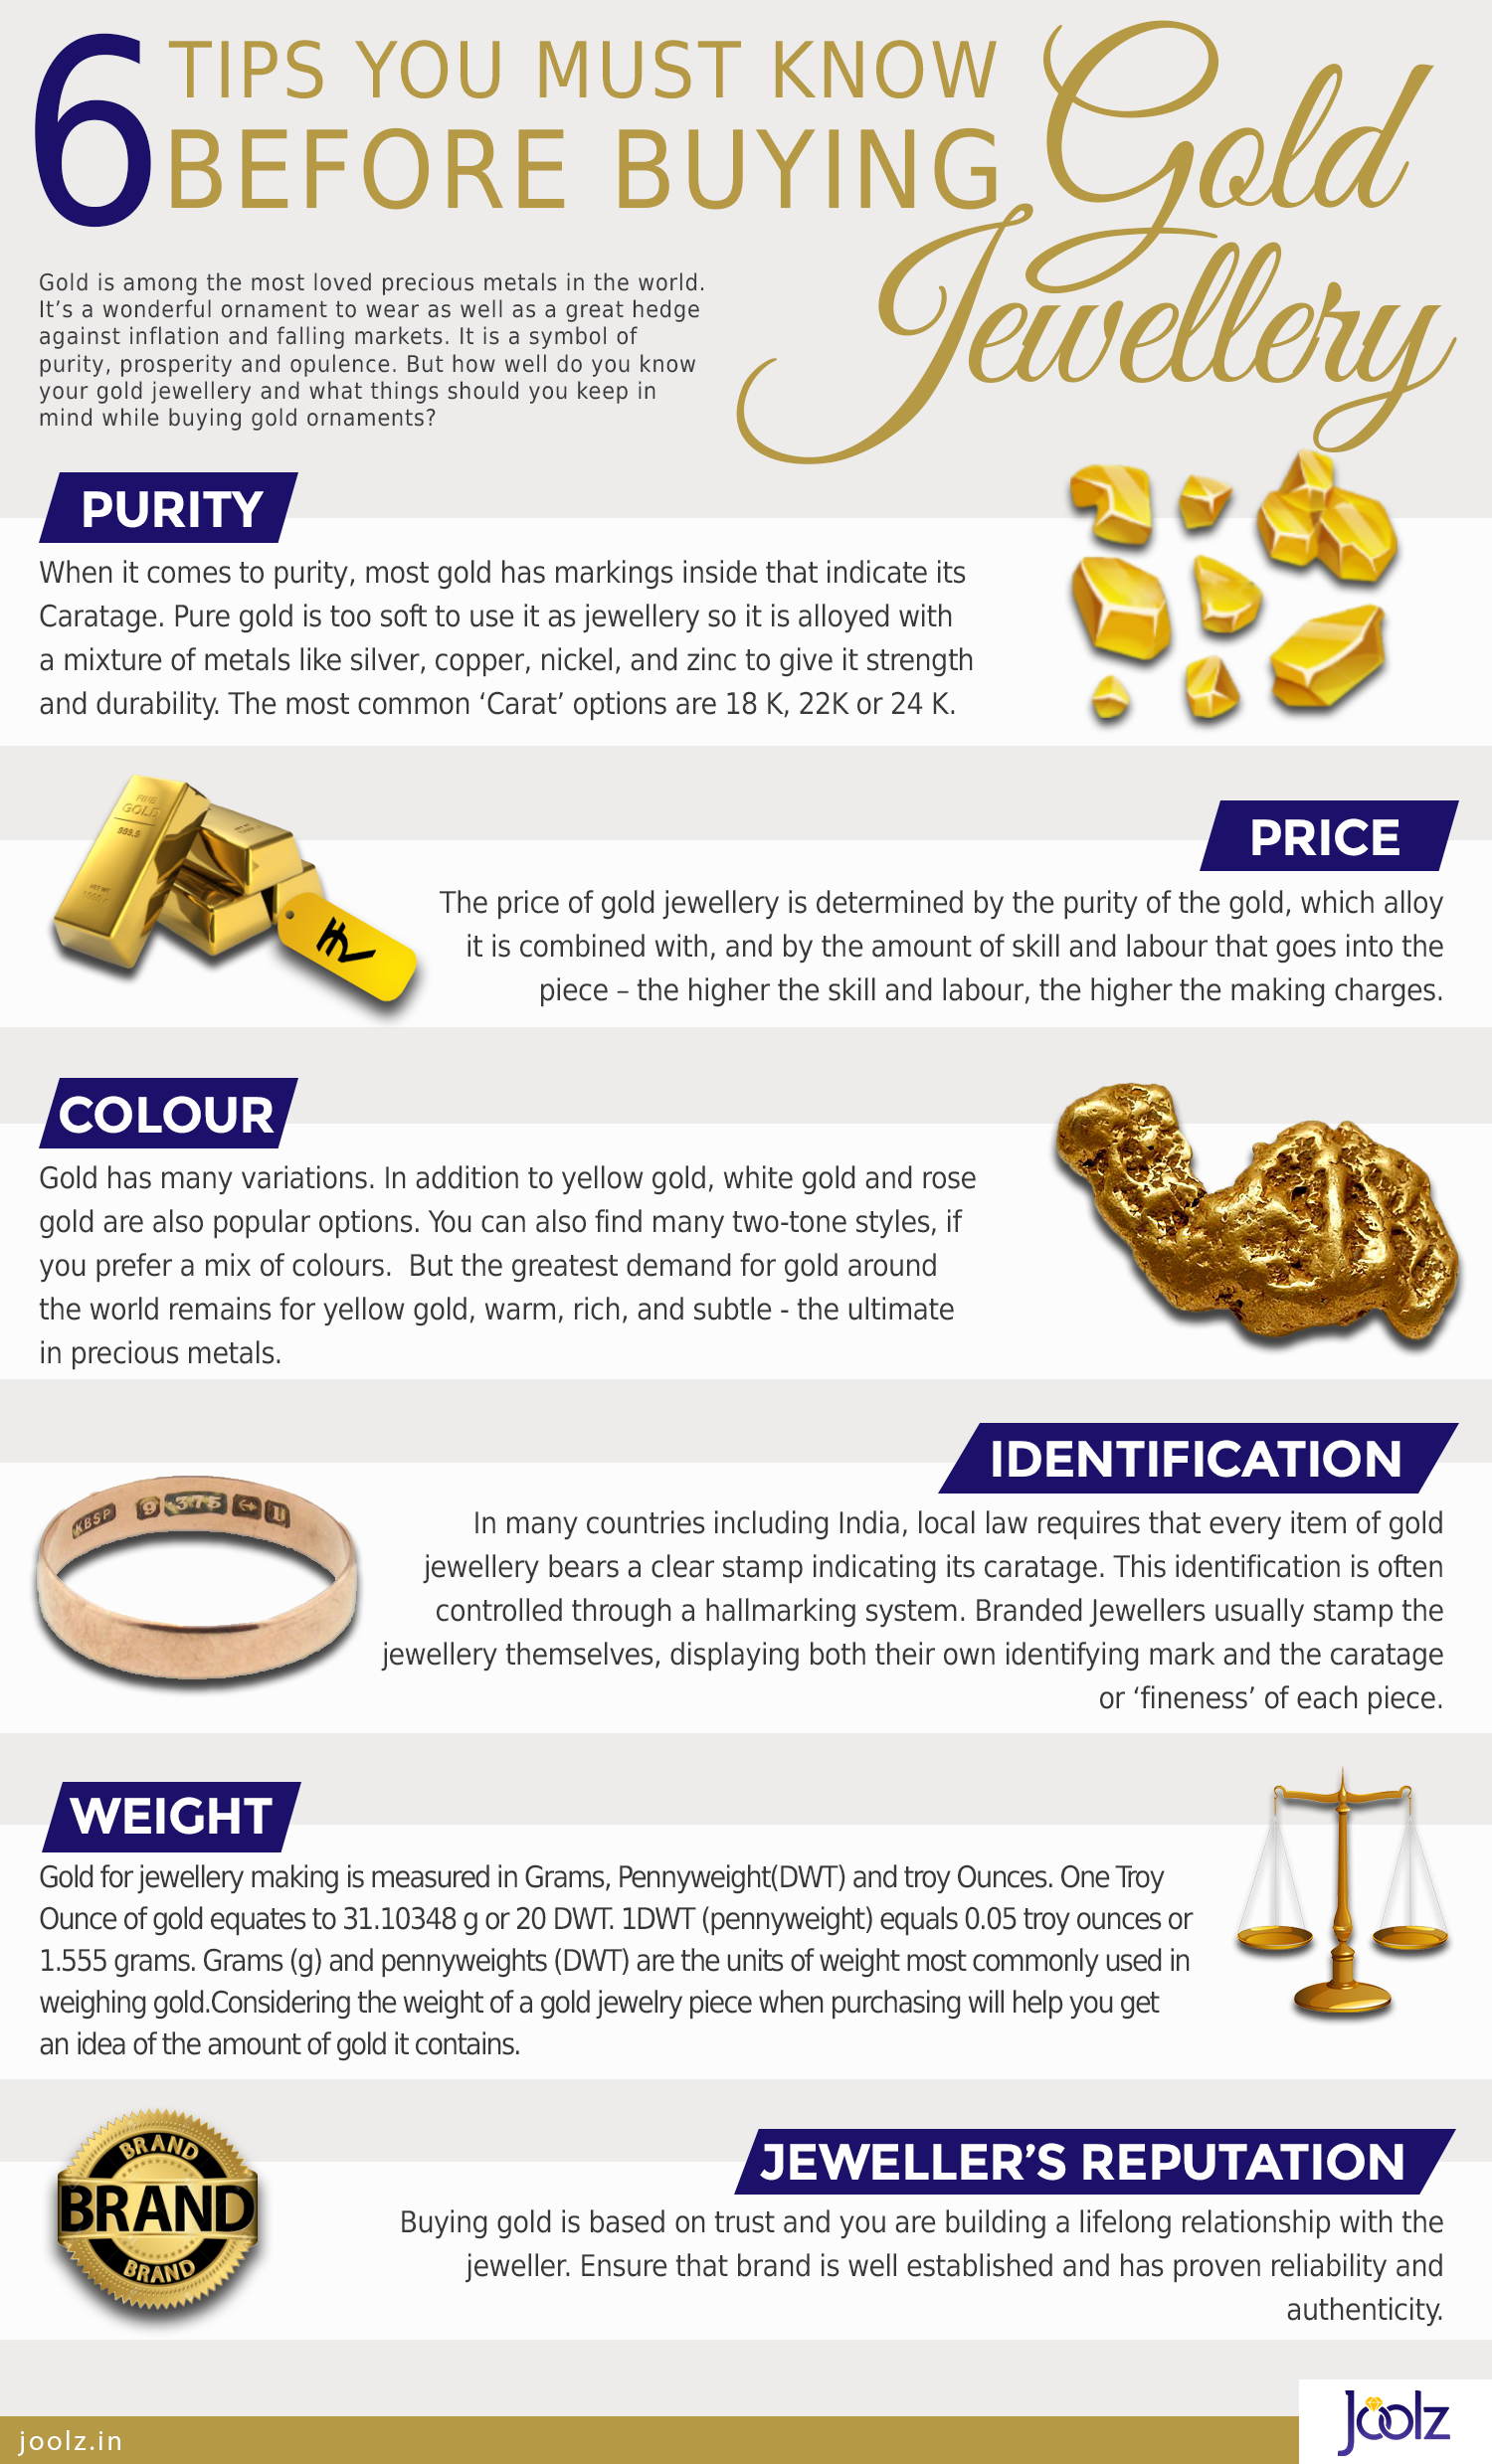 33+ Tips for buying gold jewelry viral